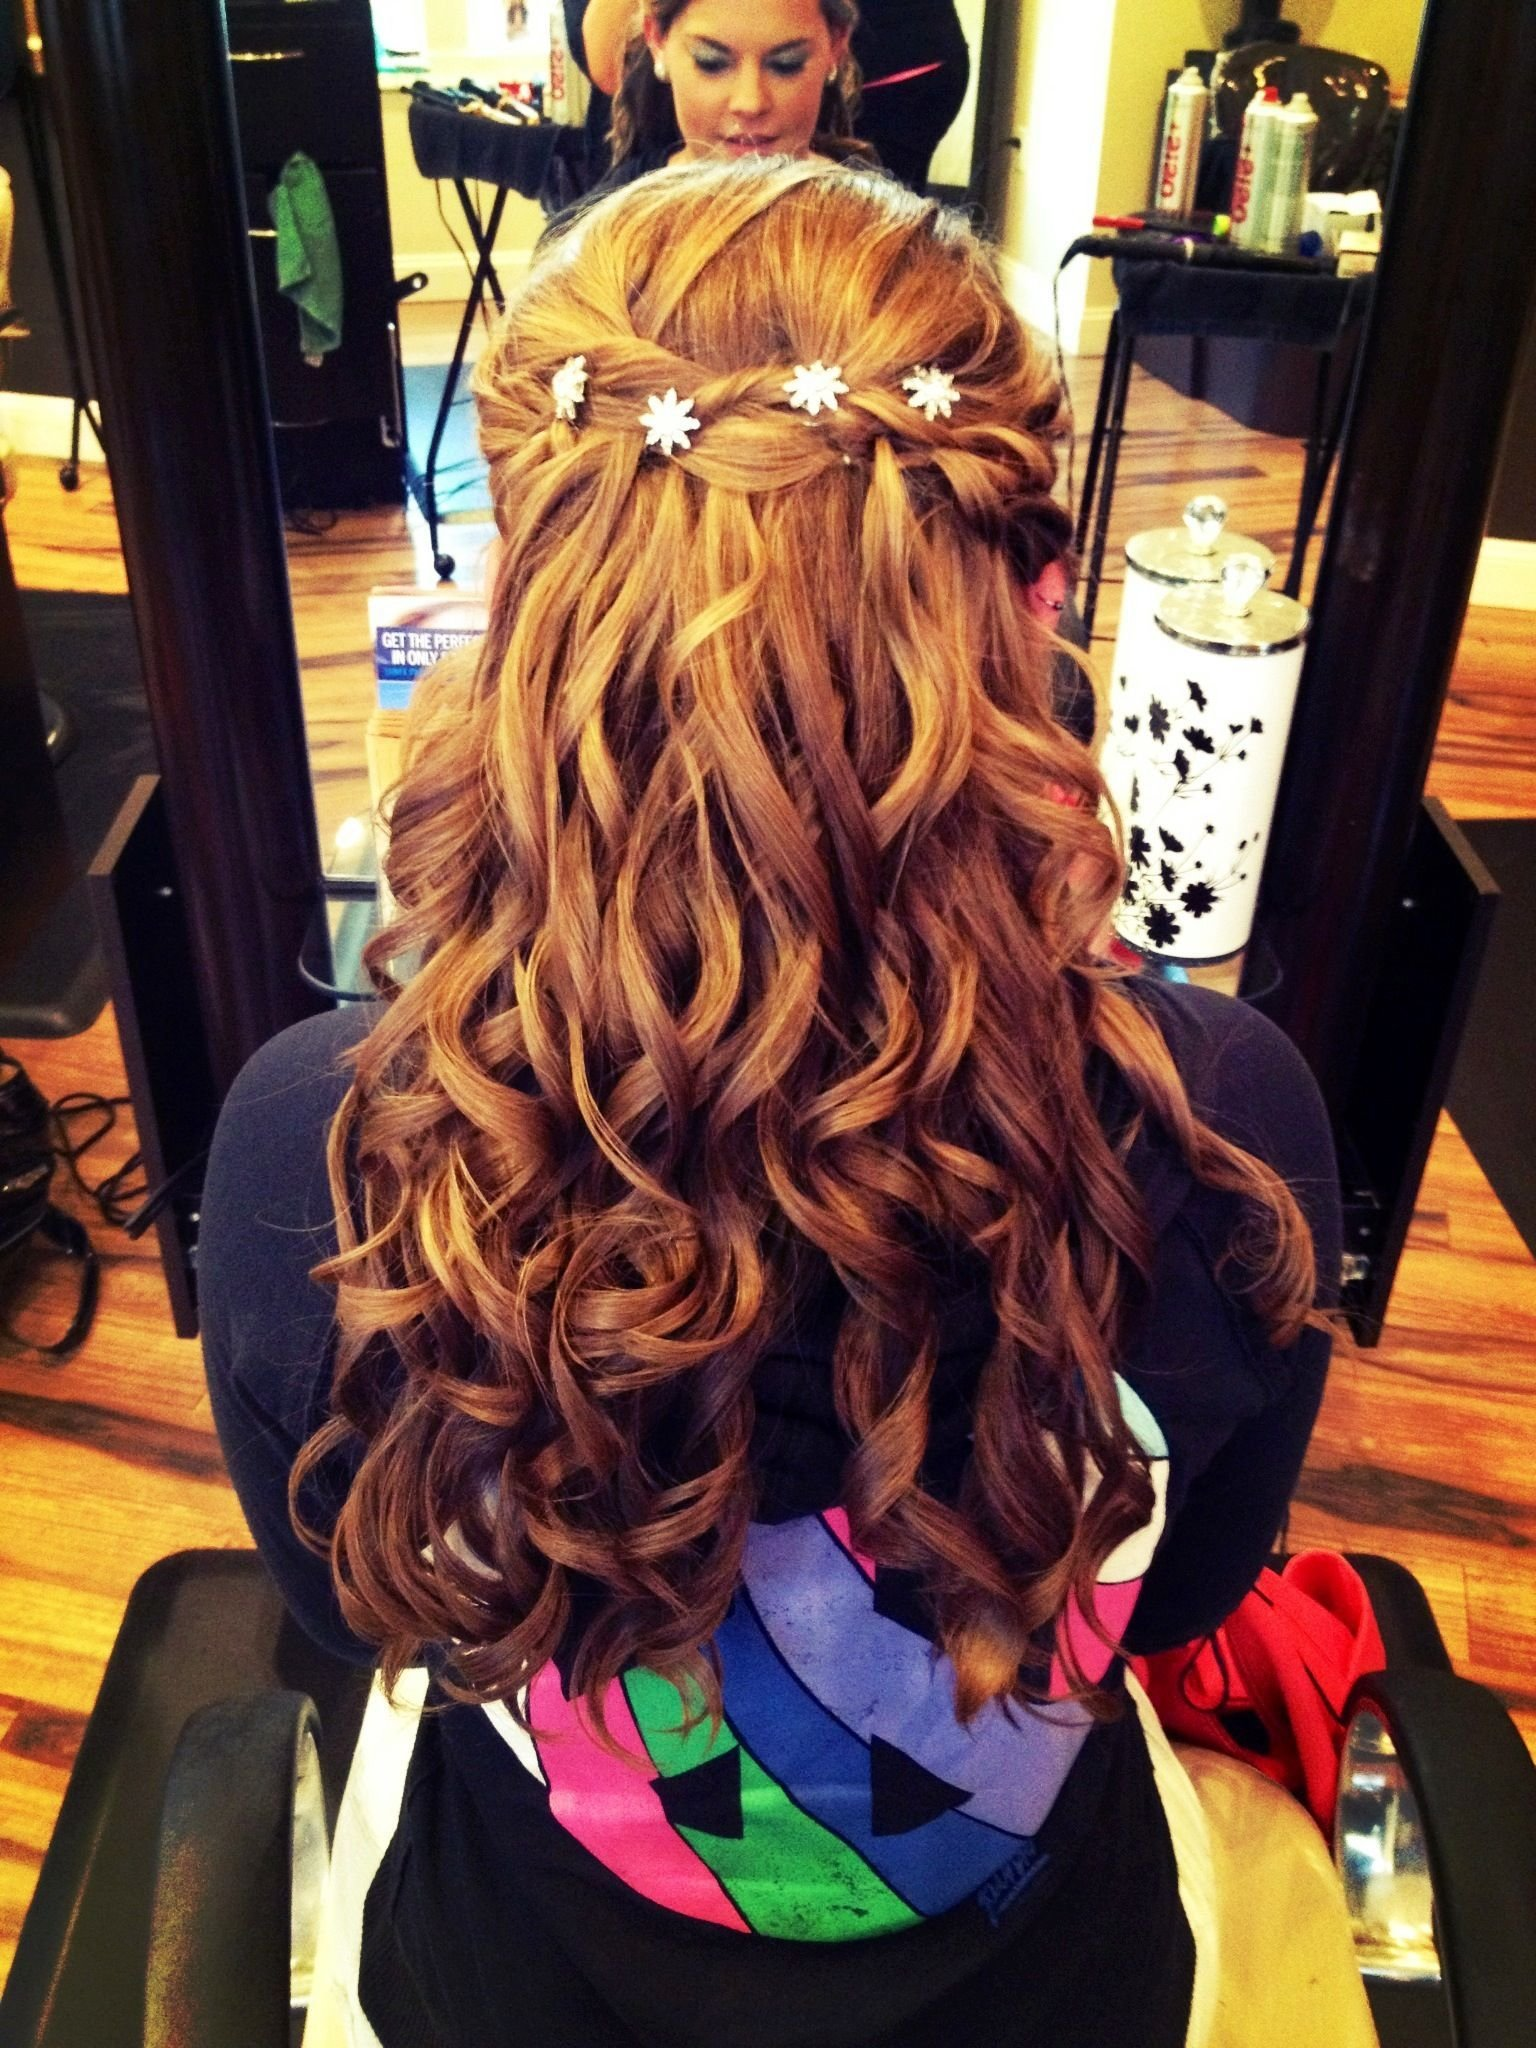 The Best Half Up Half Down Prom Updo With Curls Some Of My Work Pictures